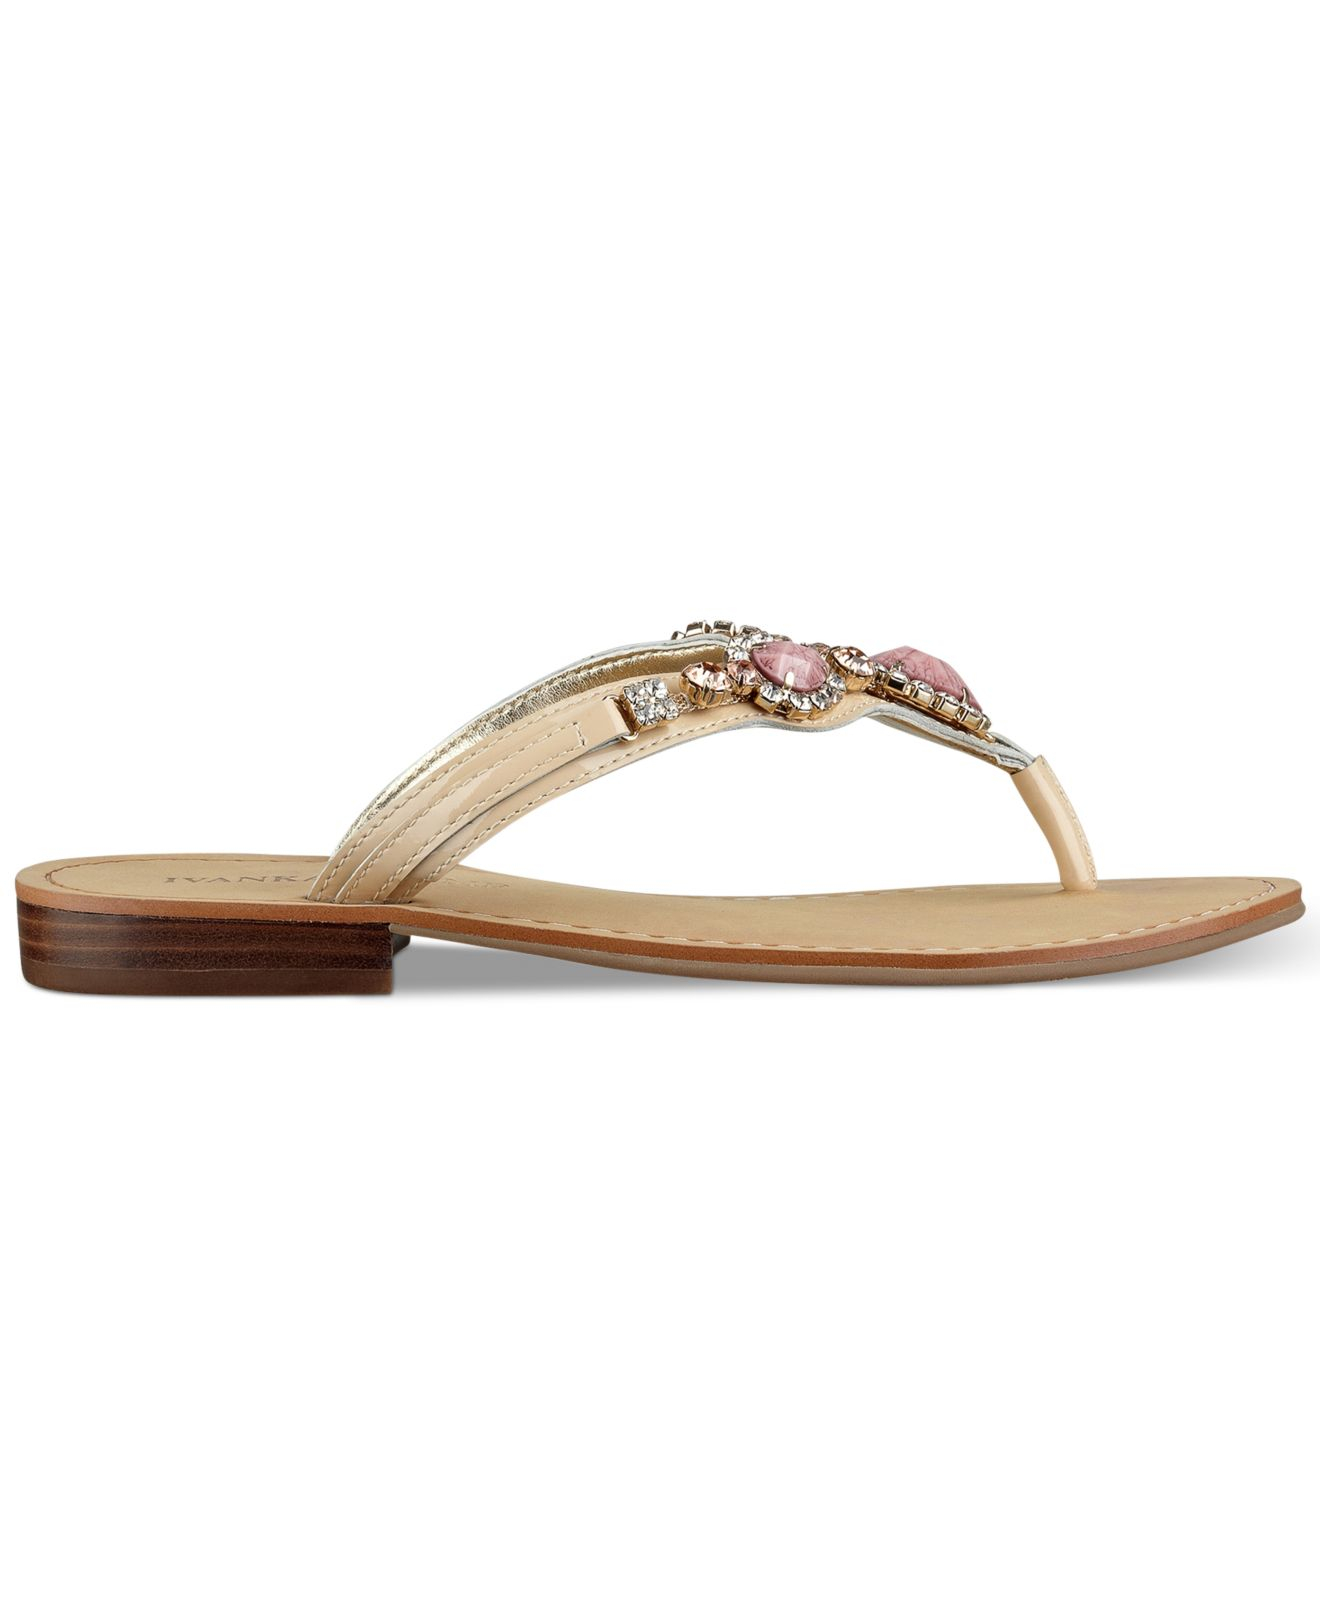 Ivanka Trump Palla Jeweled Thong Sandals In Pink Lyst